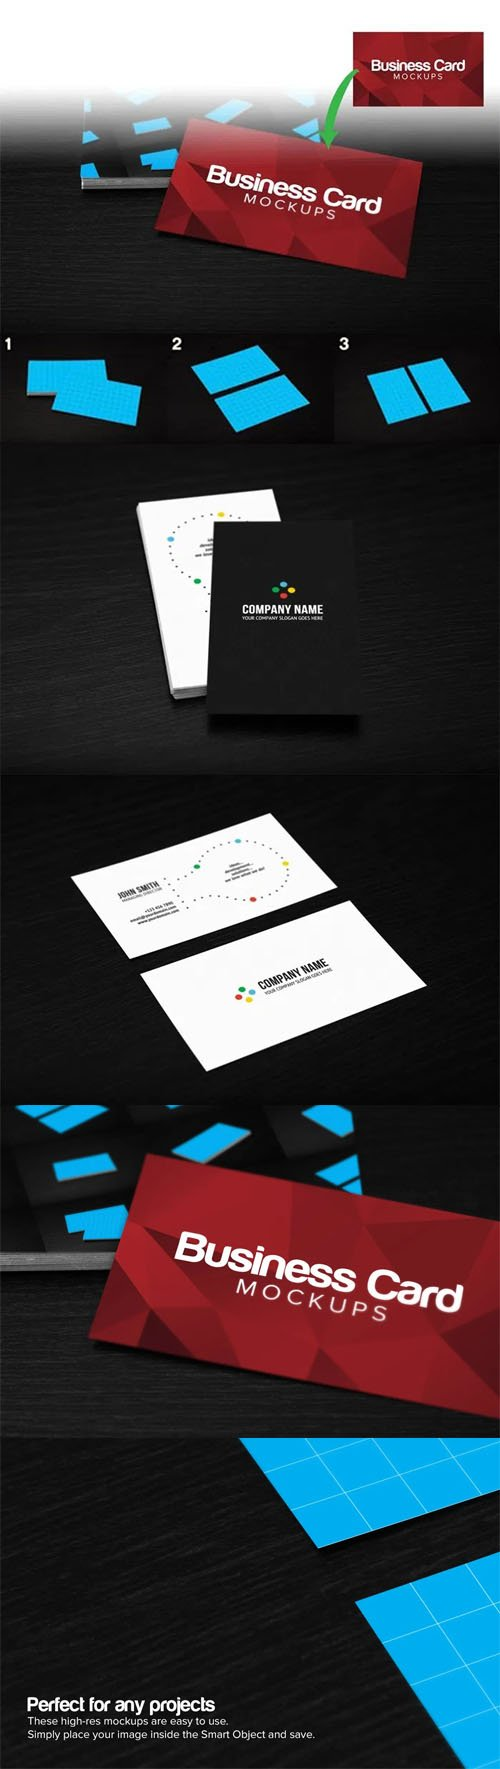 3 Business Cards PSD Mockups